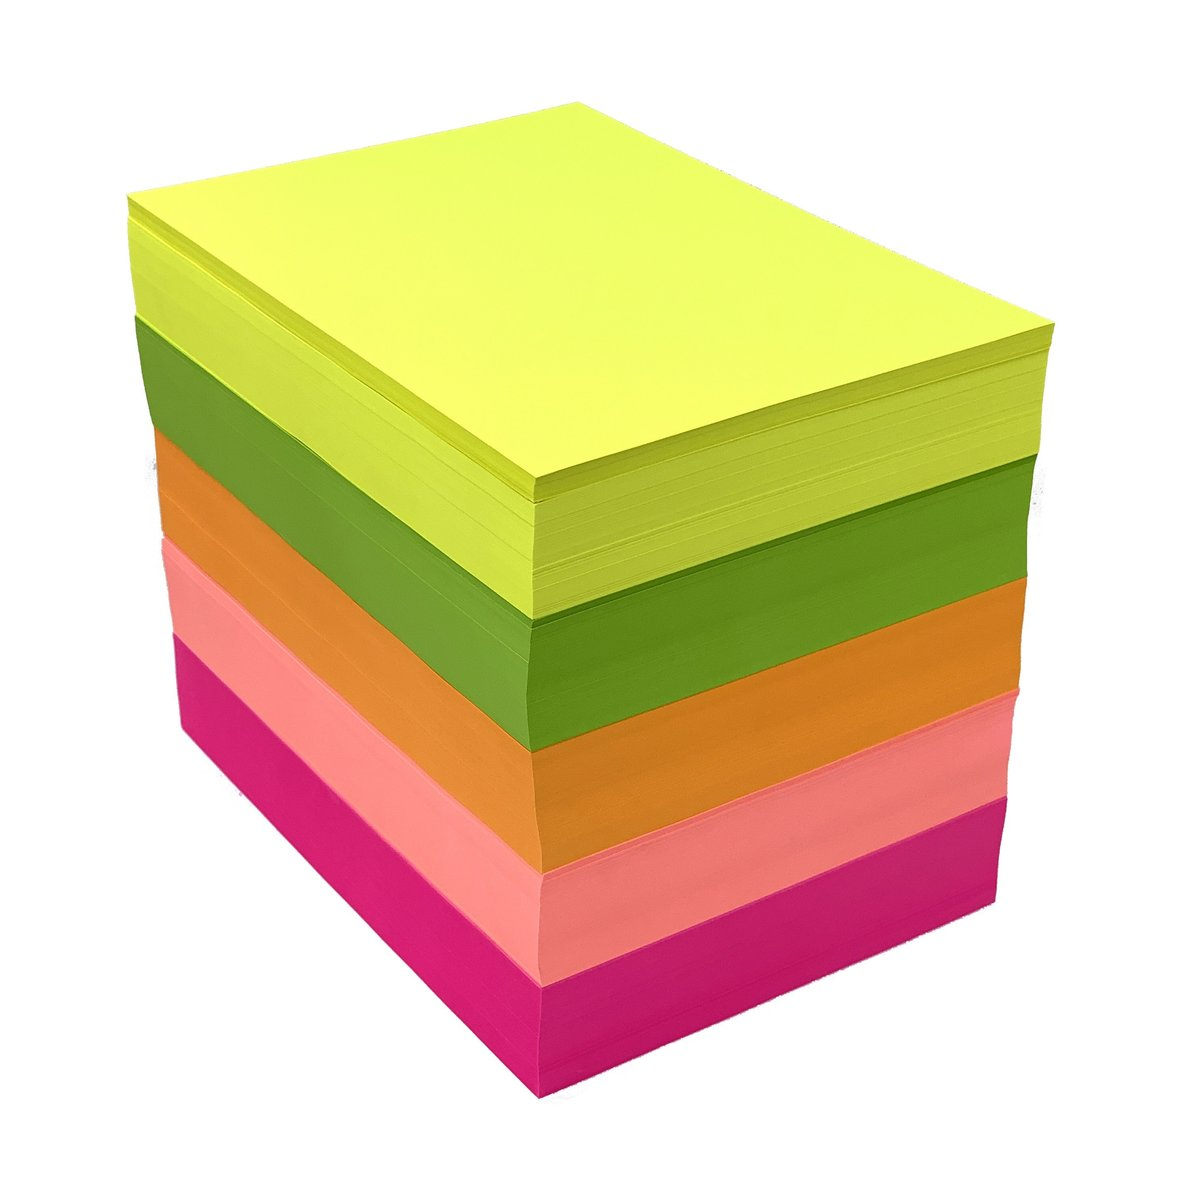 75gsm A4 Fluorescent Copy Paper (Yellow, Green, Orange, Pink, Red) 5c x 500sheets(2,500sheets)